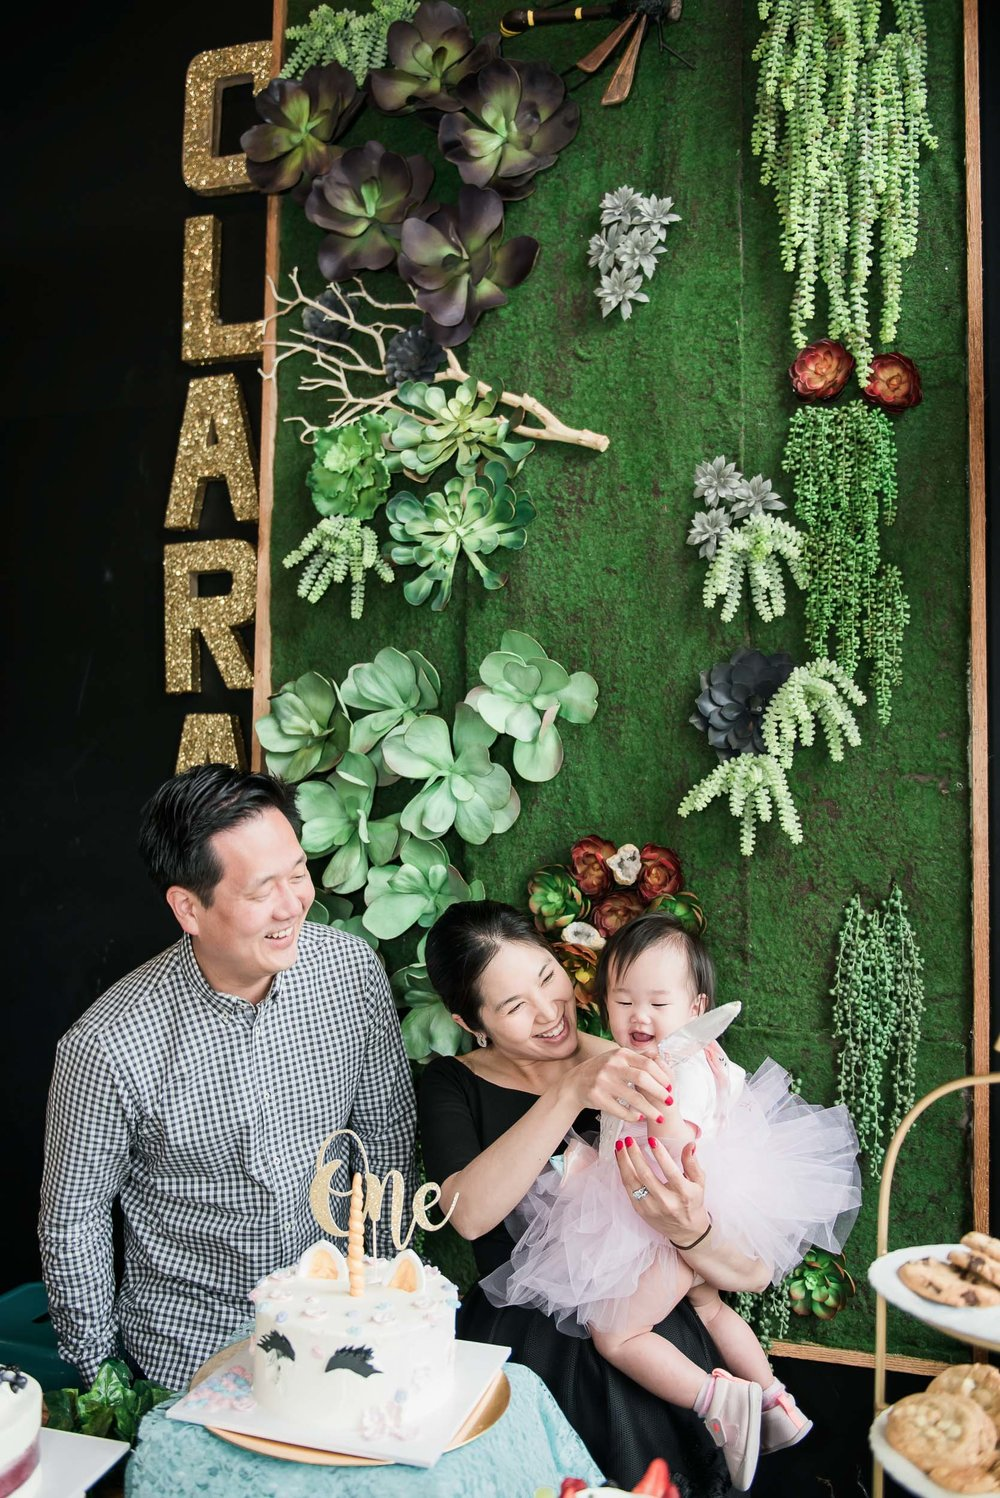 Bryan-Miraflor-Photography-Clara-First-Birthday-Pavillion-Park-OC-20170226-0419.jpg